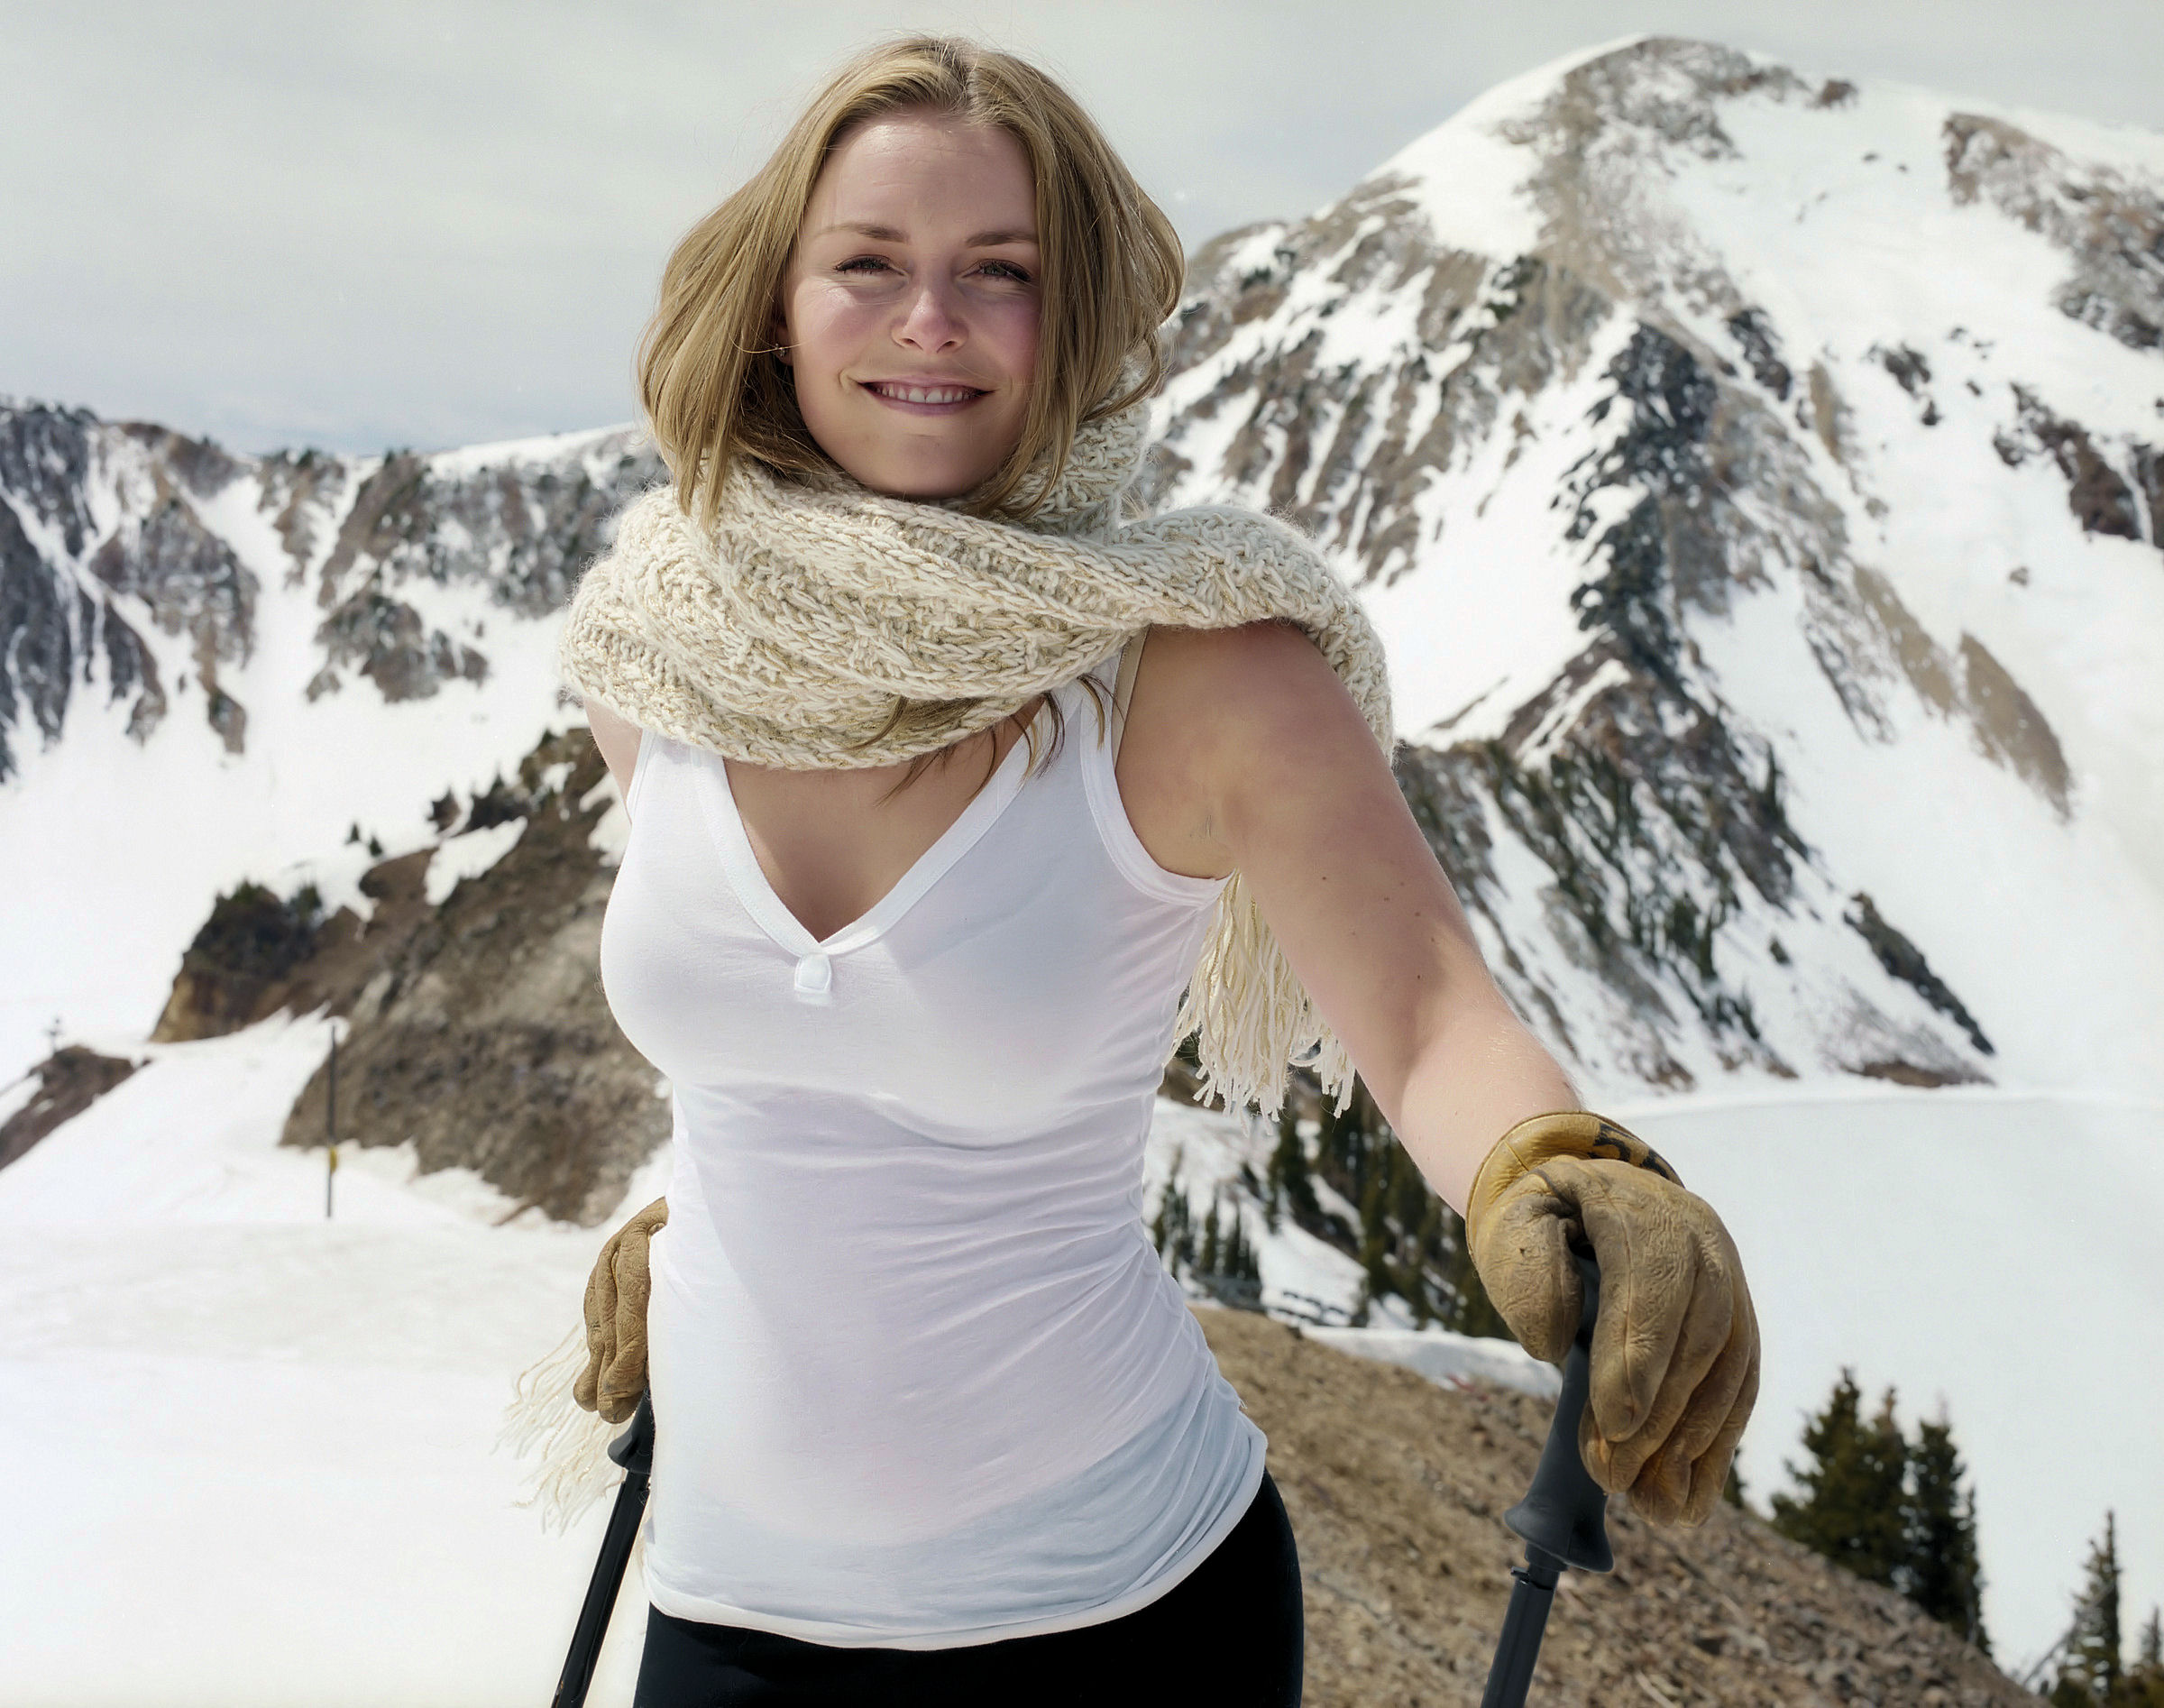 Lindsey Vonn photo gallery - 96 high quality pics of Lindsey Vonn ...